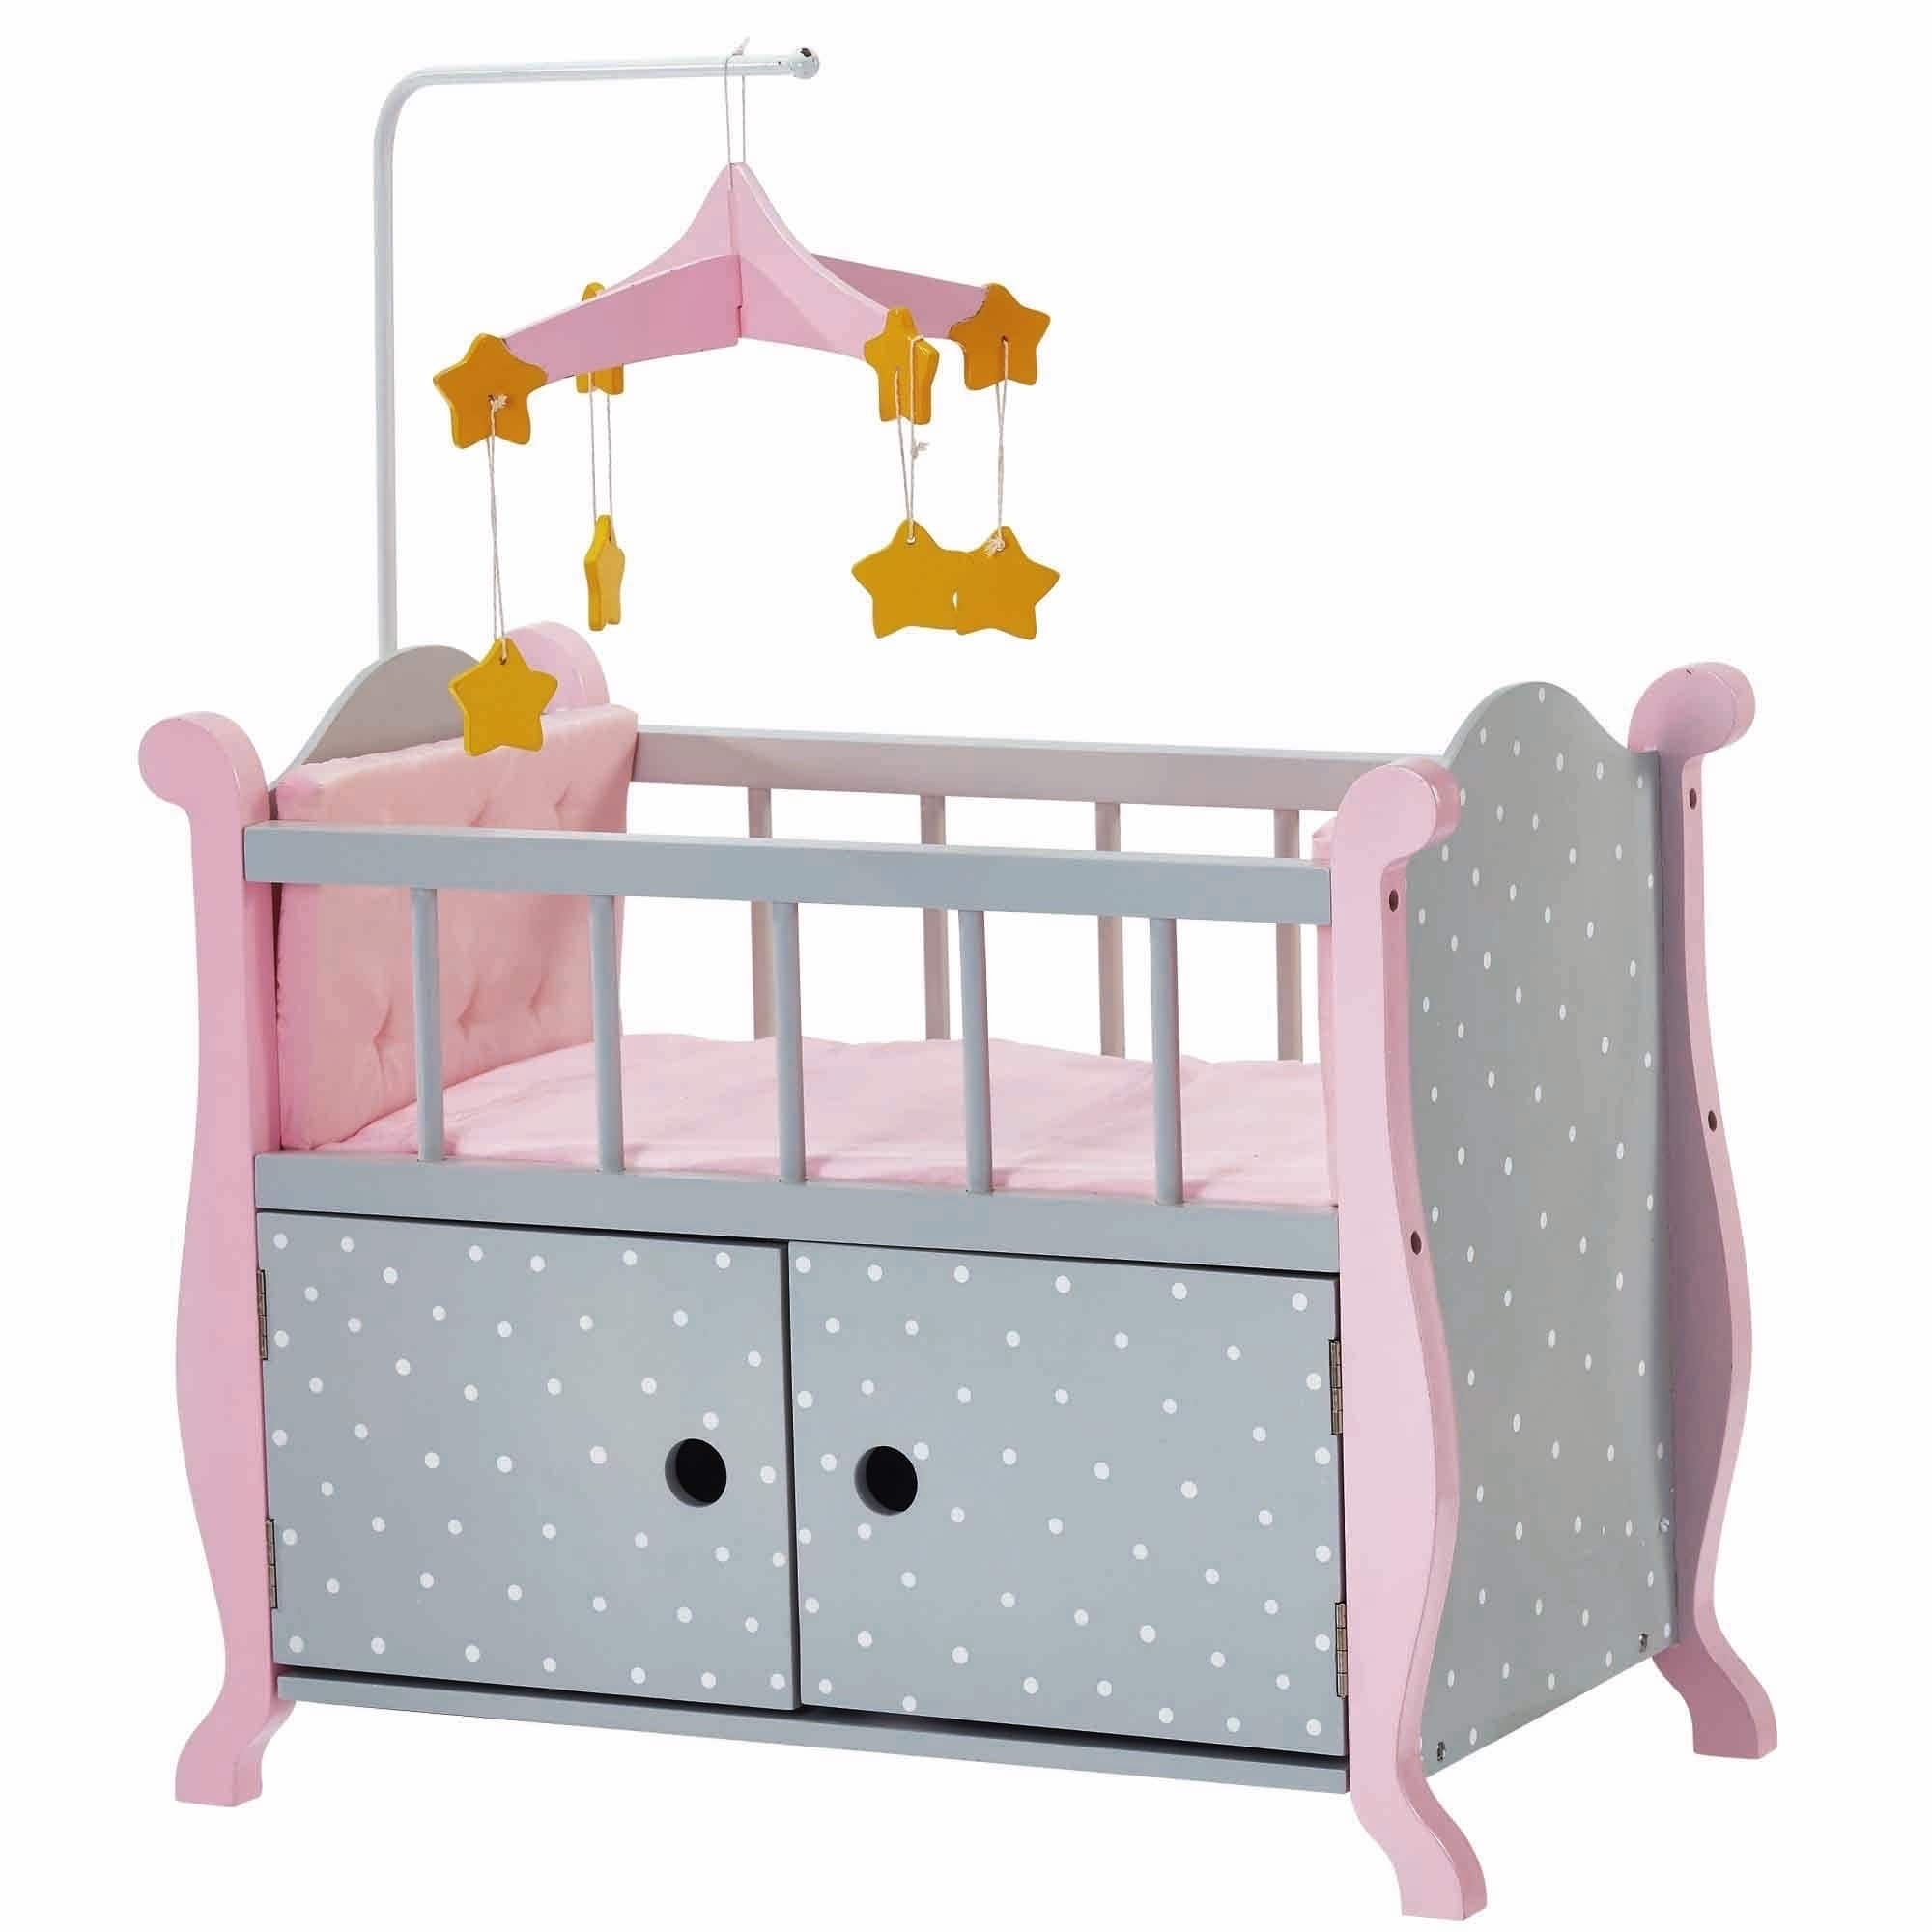 Olivia's Little World Baby Doll Furniture Nursery Crib Bed with Storage, Gray Polka Dots by Teamson